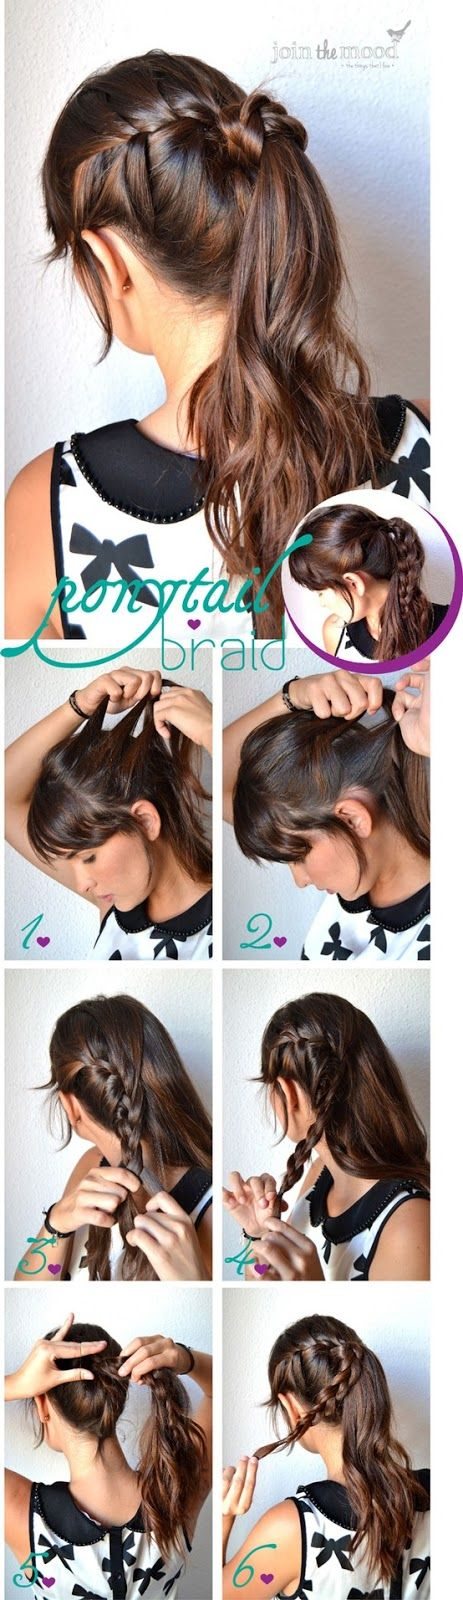 ponytail braid hair tutorial | Shes Beautiful